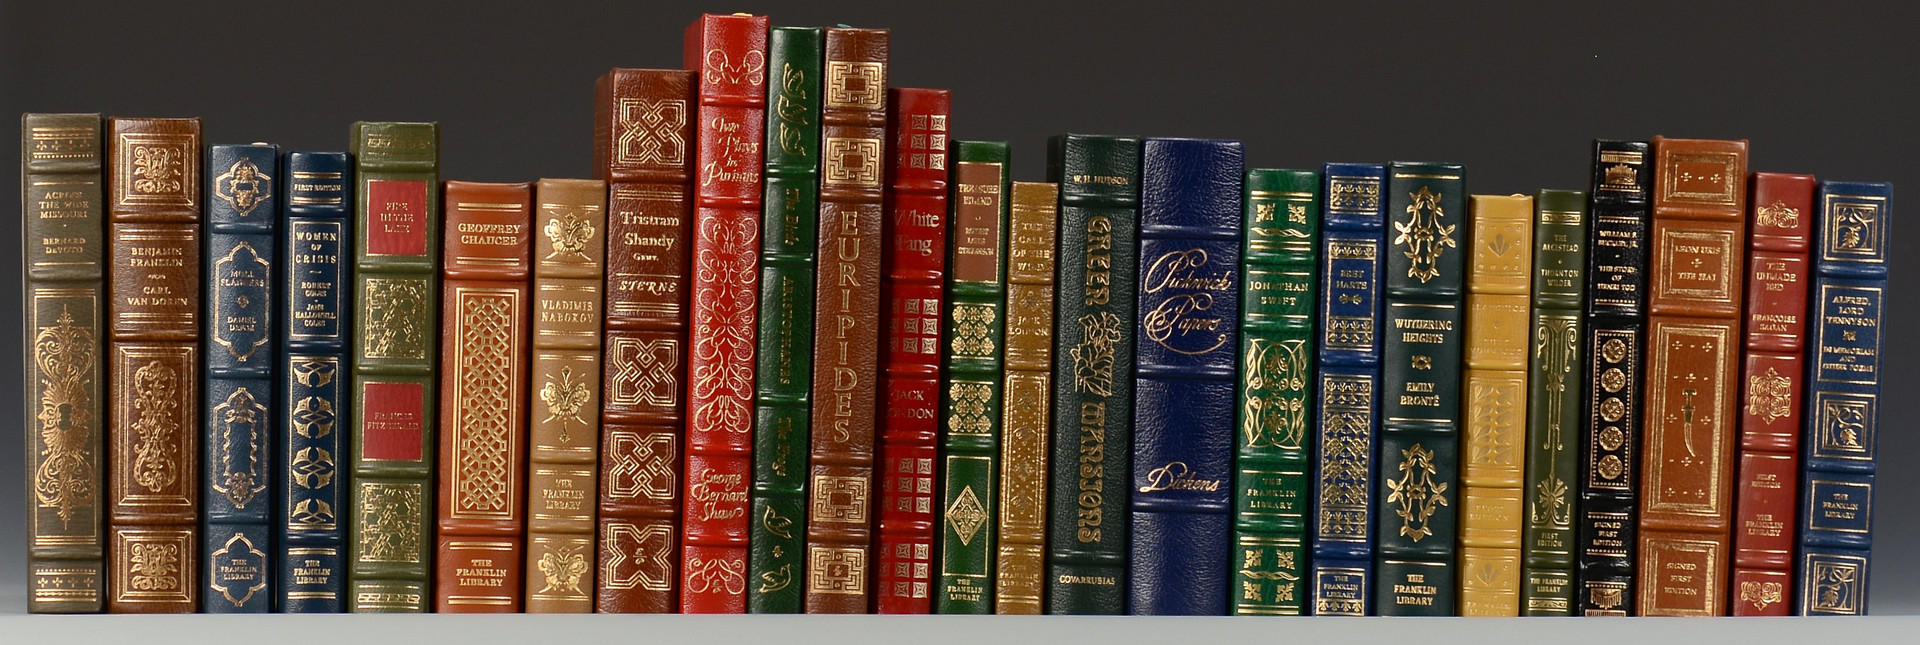 Lot 733: 25 Easton Press and Franklin Library leather bound